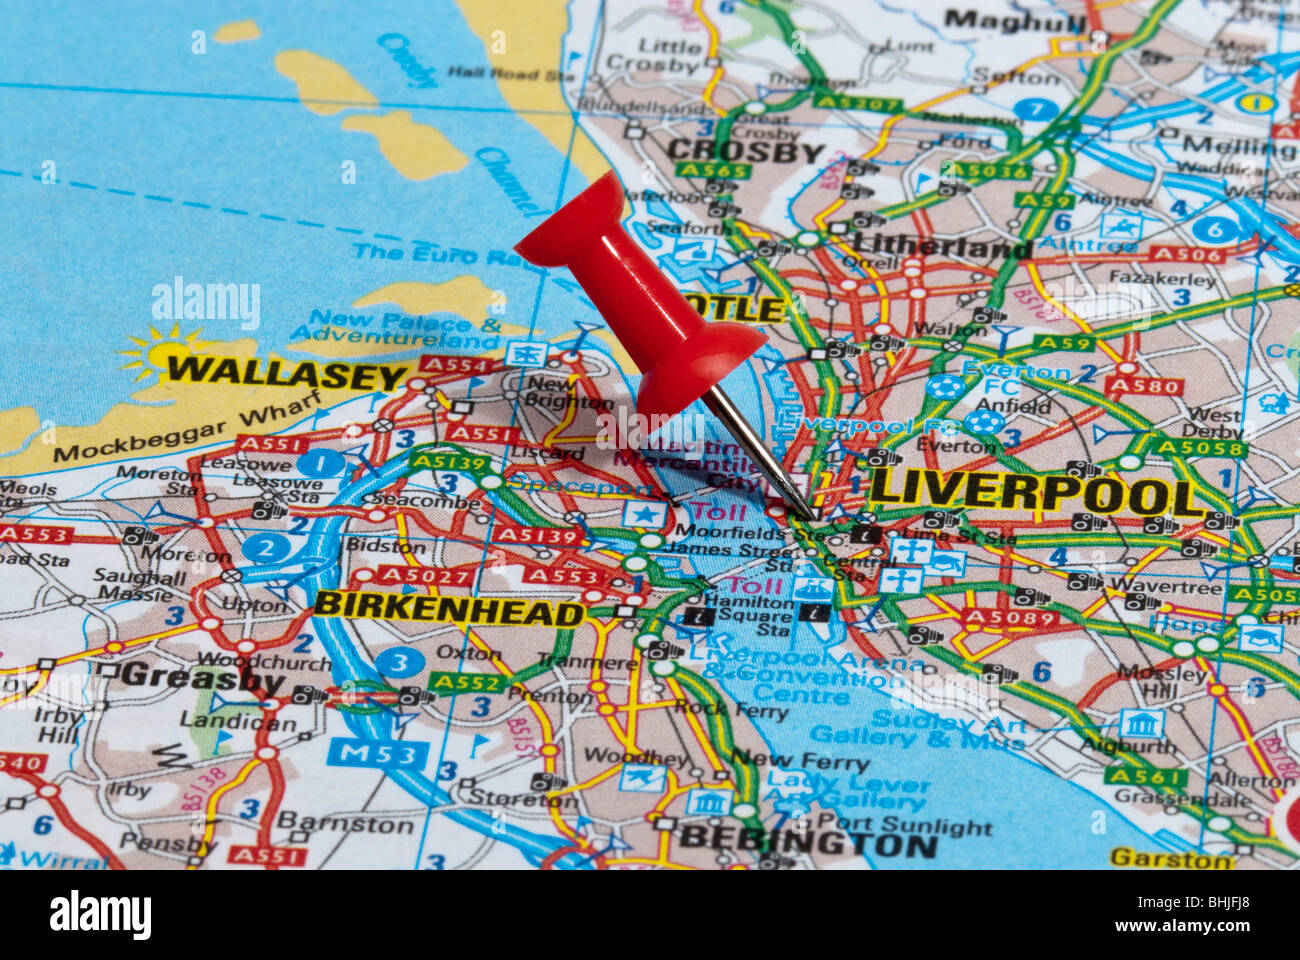 Liverpool City Map Map City Liverpool Map Pin Stock Photos & Map City Liverpool Map  Liverpool City Map